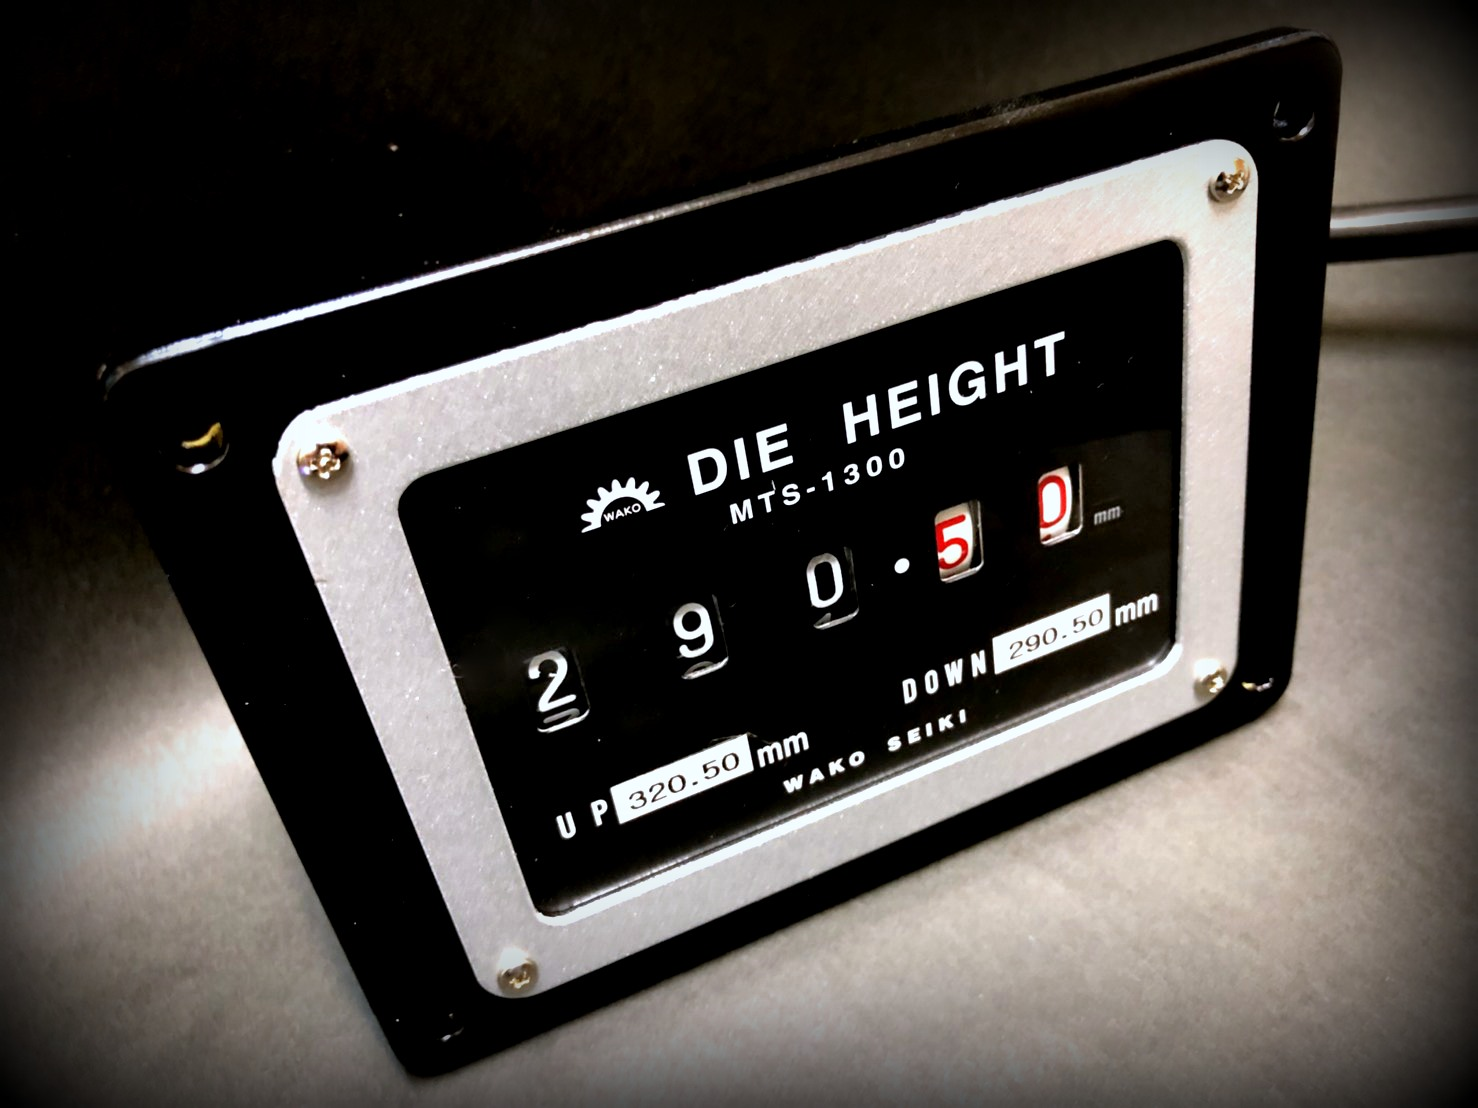 The Wako Seiki Die Height Indicator